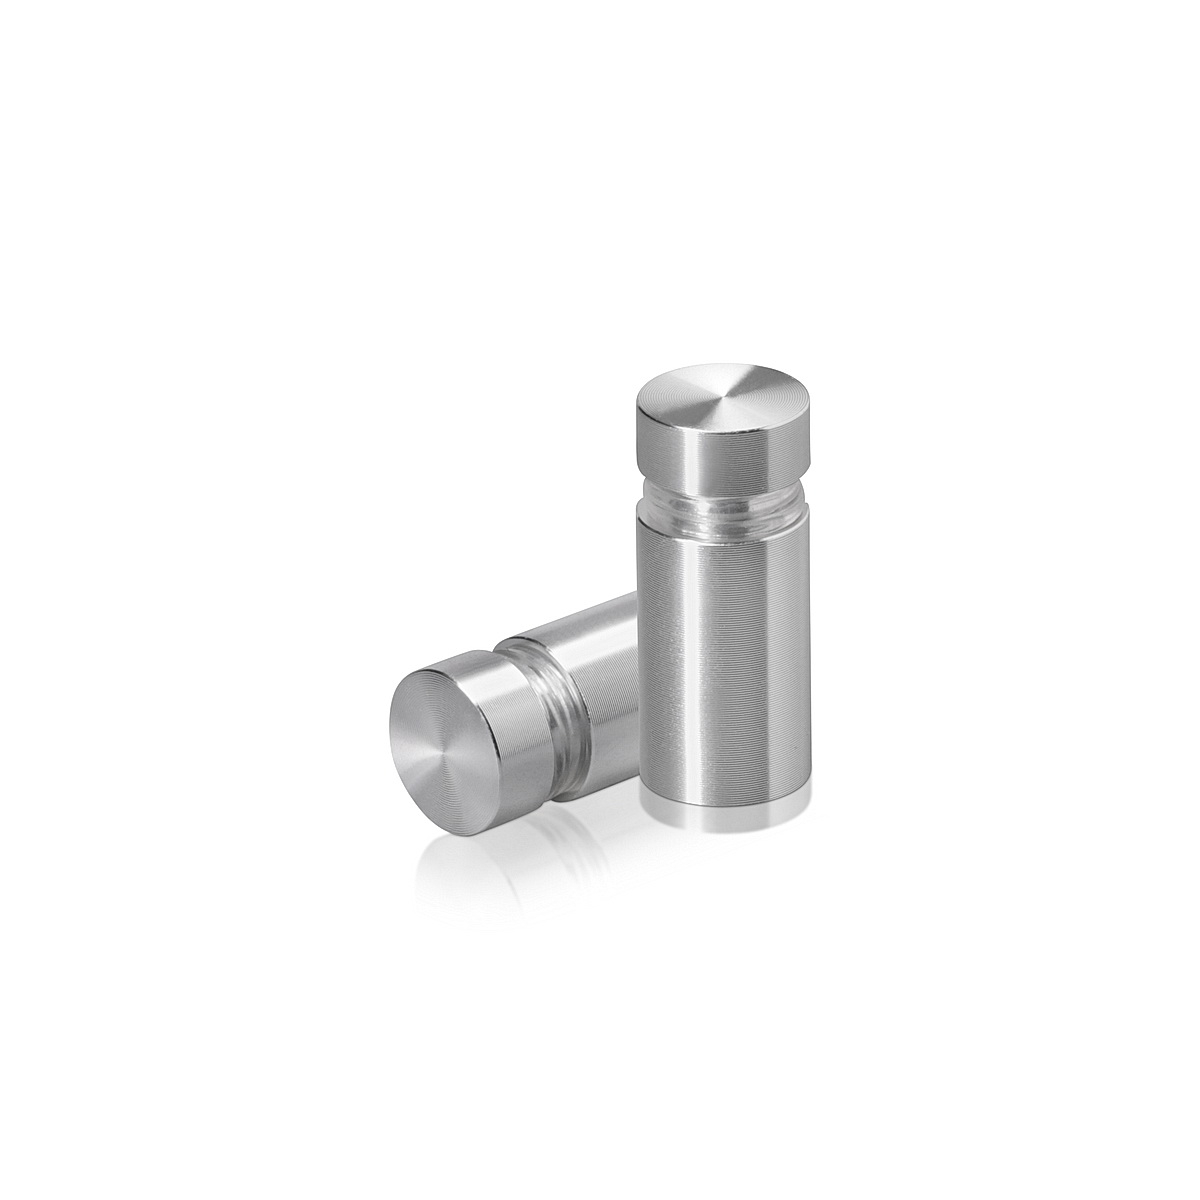 Tamper Proof Aluminum Flat Head Standoffs, Diameter: 1/2'', Standoff: 3/4'', Clear Anodized Shiny Finish